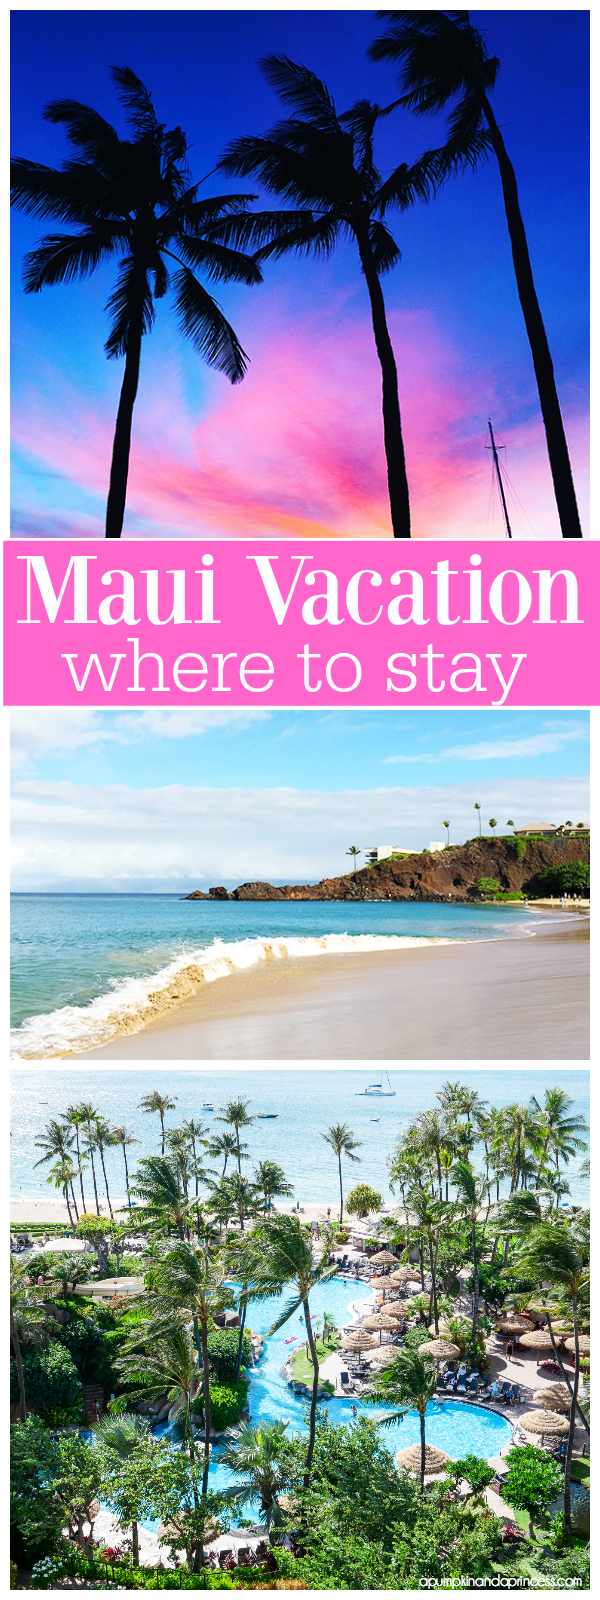 Maui Vacation Travel Tips: where to stay